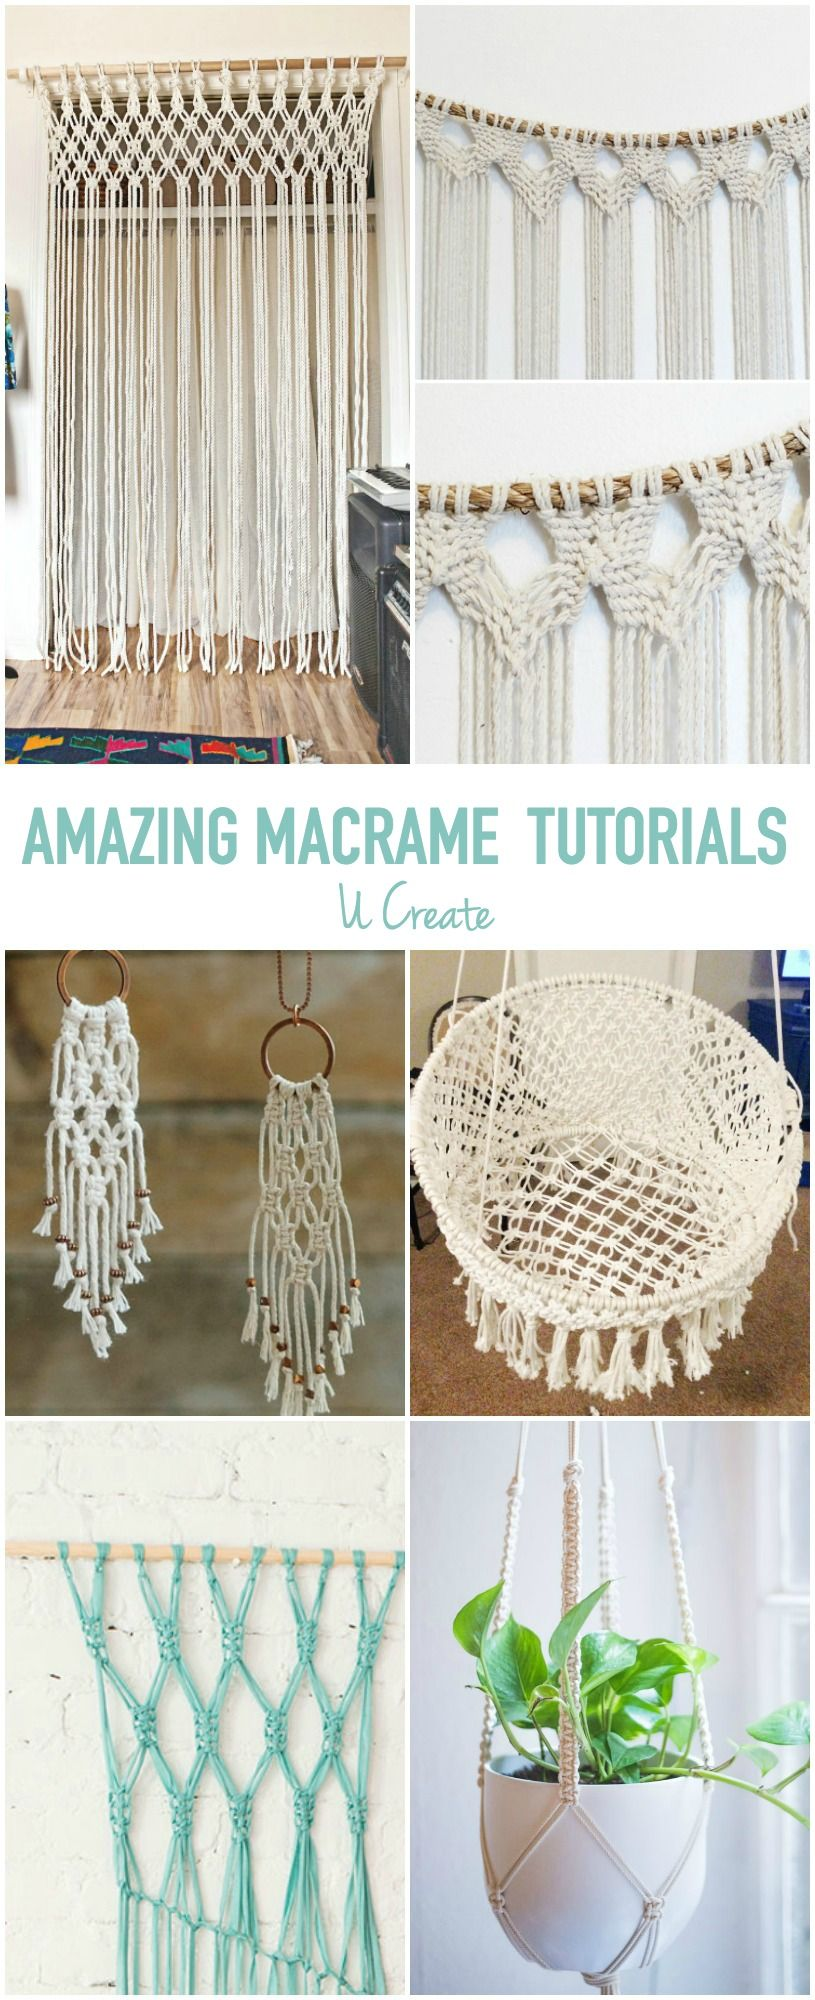 amazing macrame tutorials u create macrame. Black Bedroom Furniture Sets. Home Design Ideas